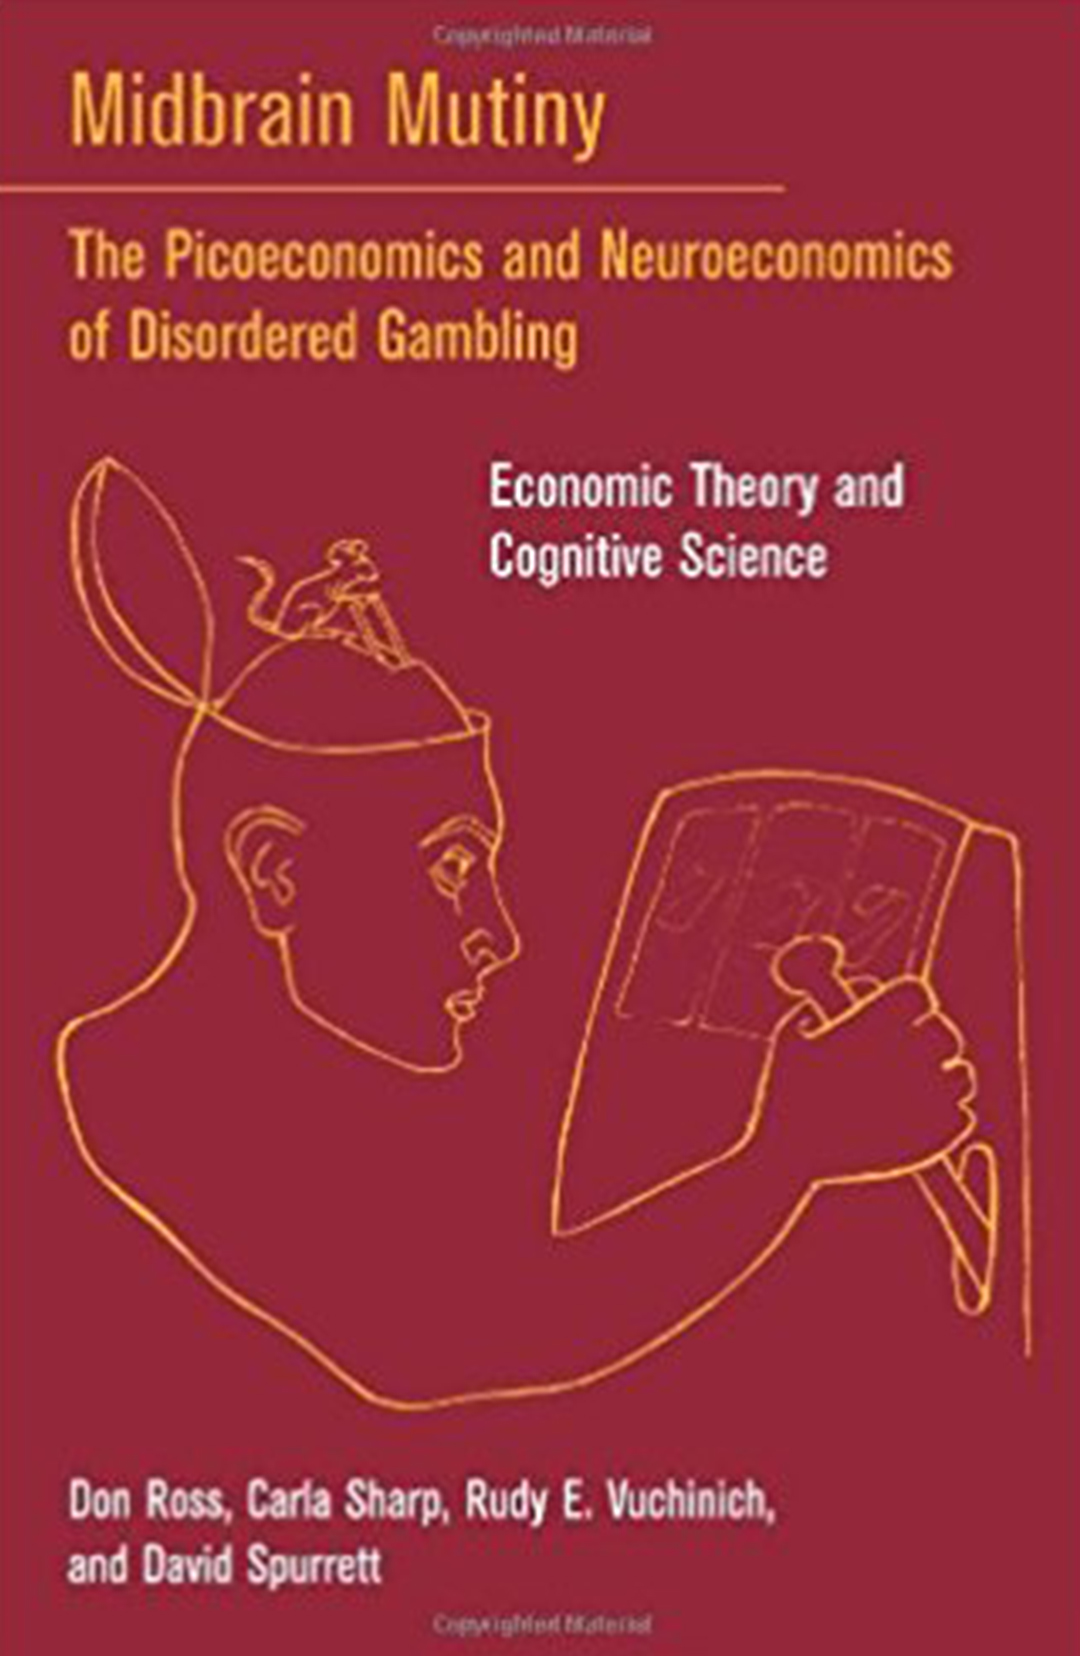 The Picoeconomics and Neuroeconomics of Disordered Gambling